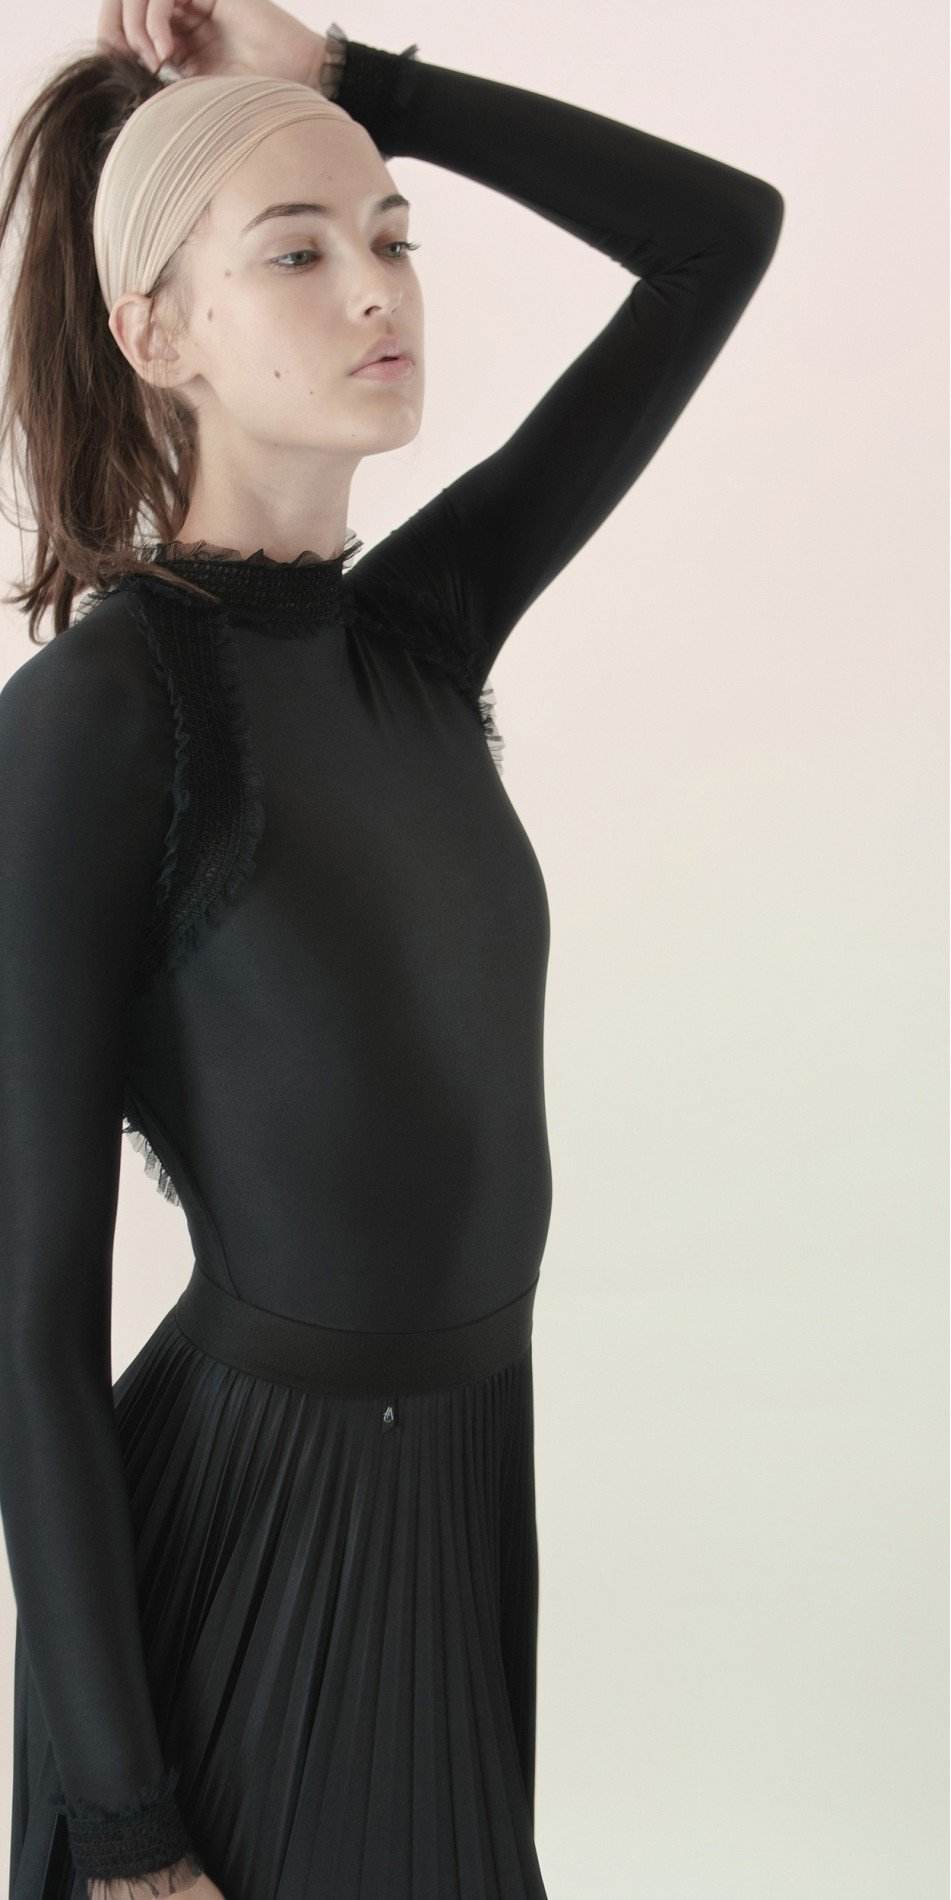 ELEANOR backless20leotard blk 4 r